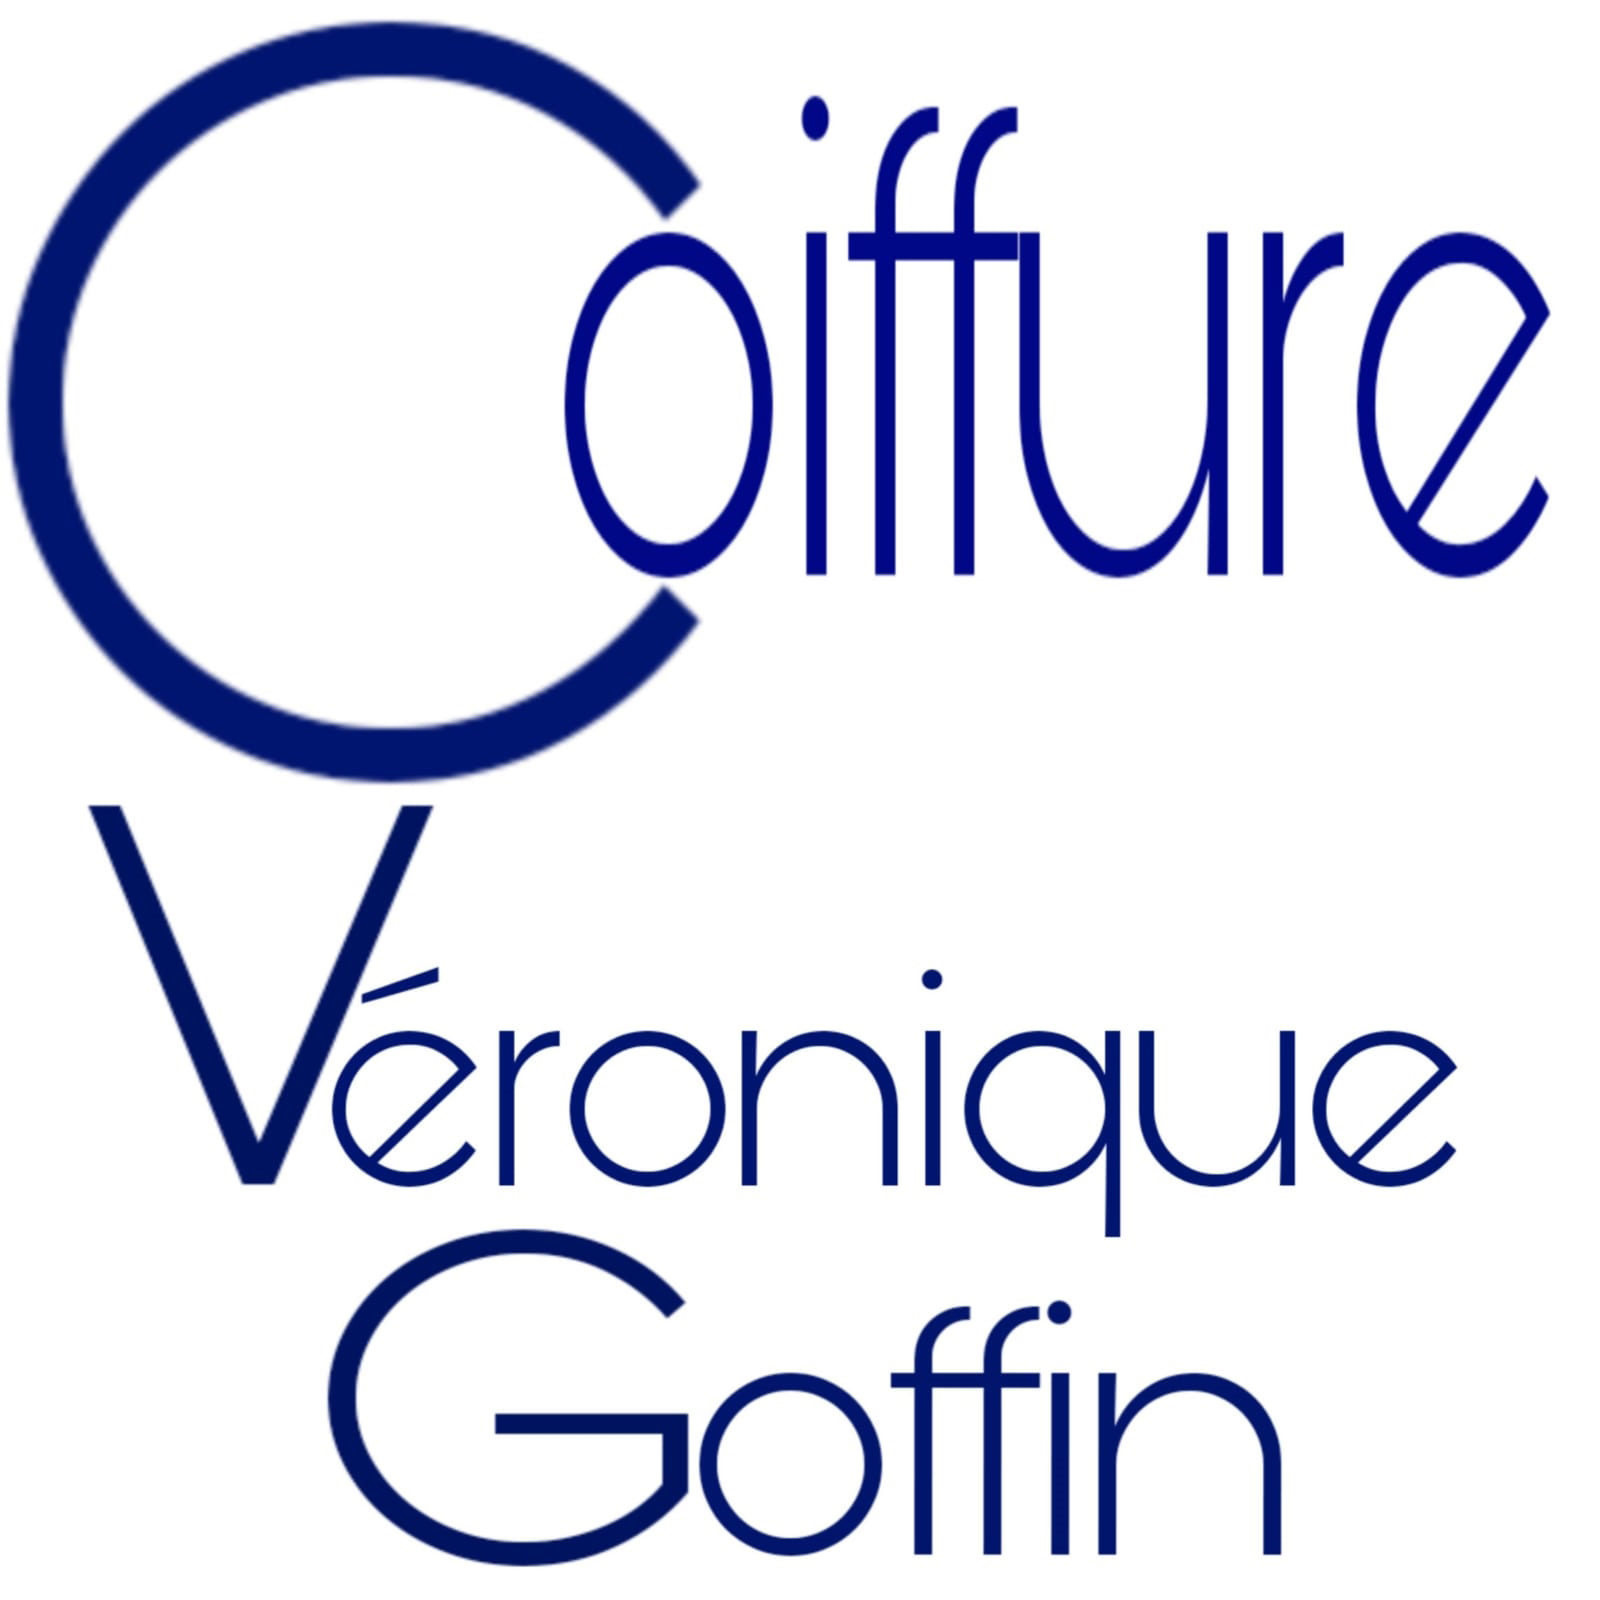 Véronique Goffin